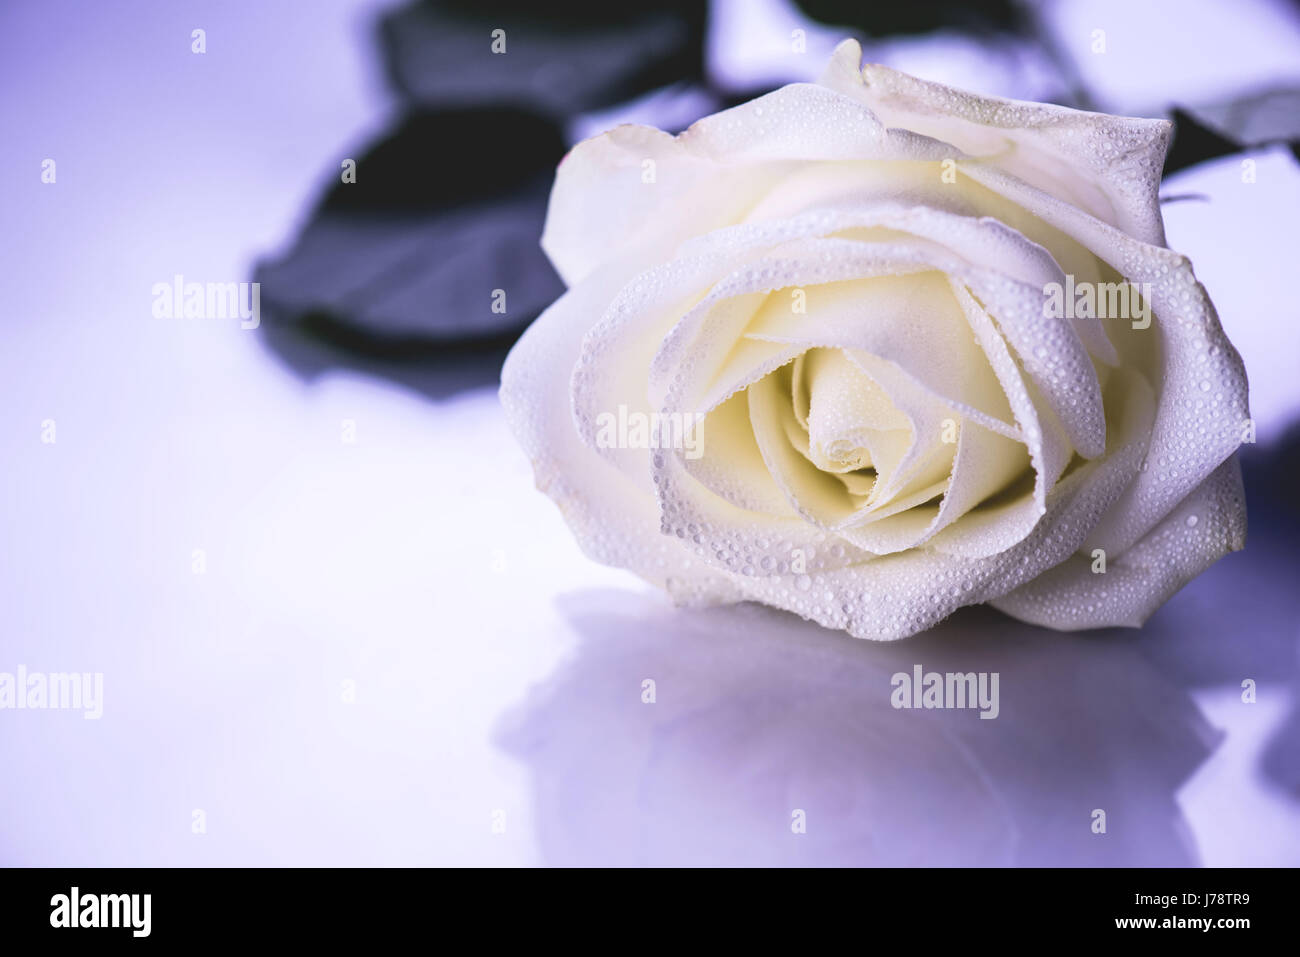 A gentle rose in dewdrops on a mirror table - Stock Image